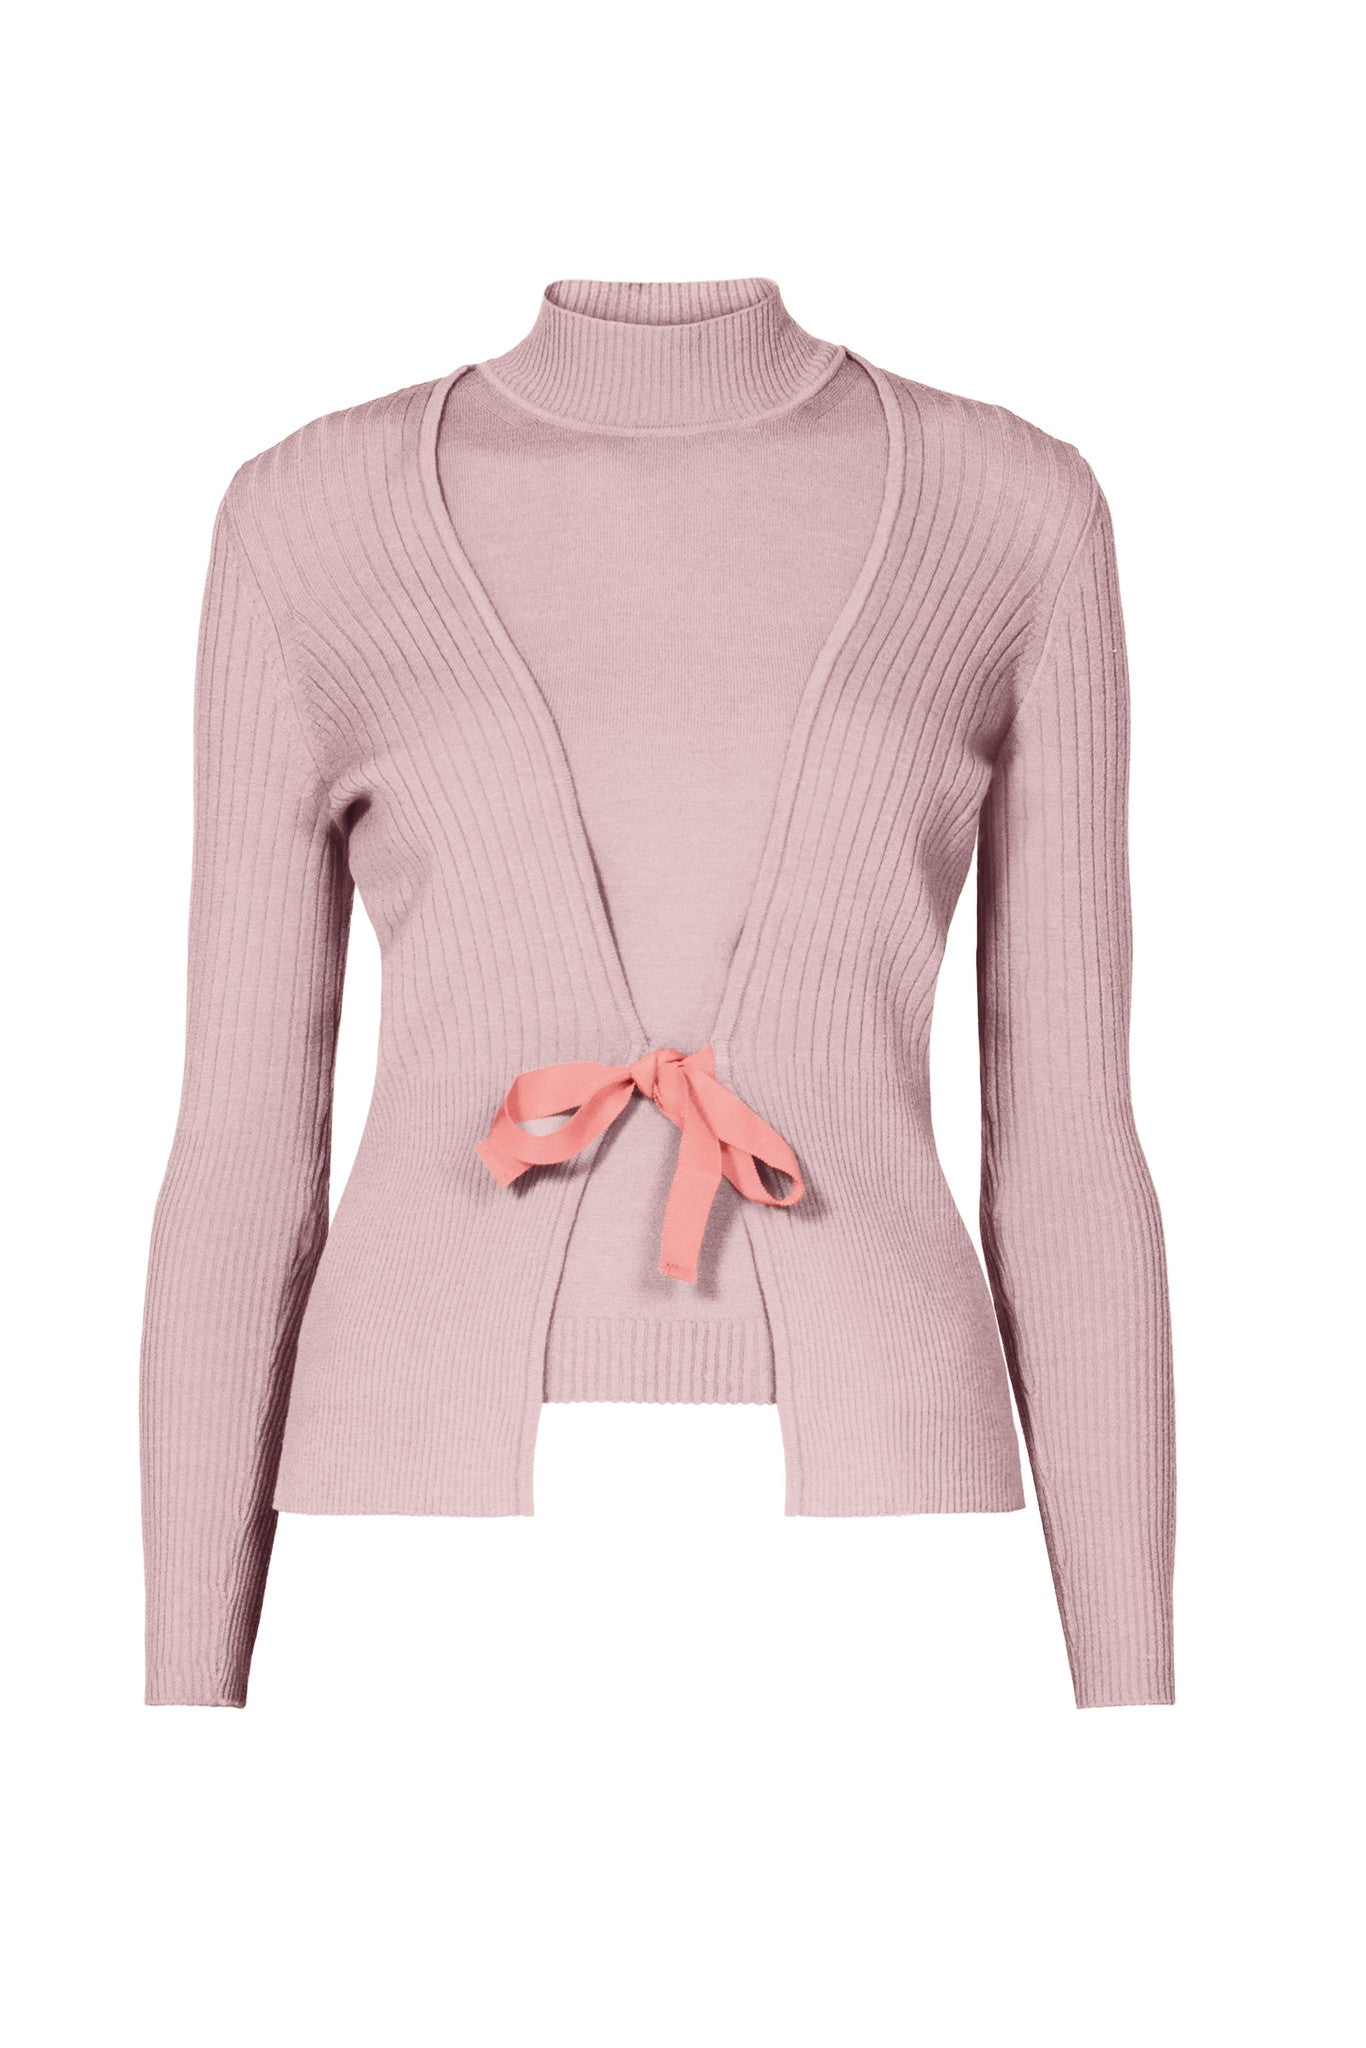 Powder pink wool cardigan and sleeveless top